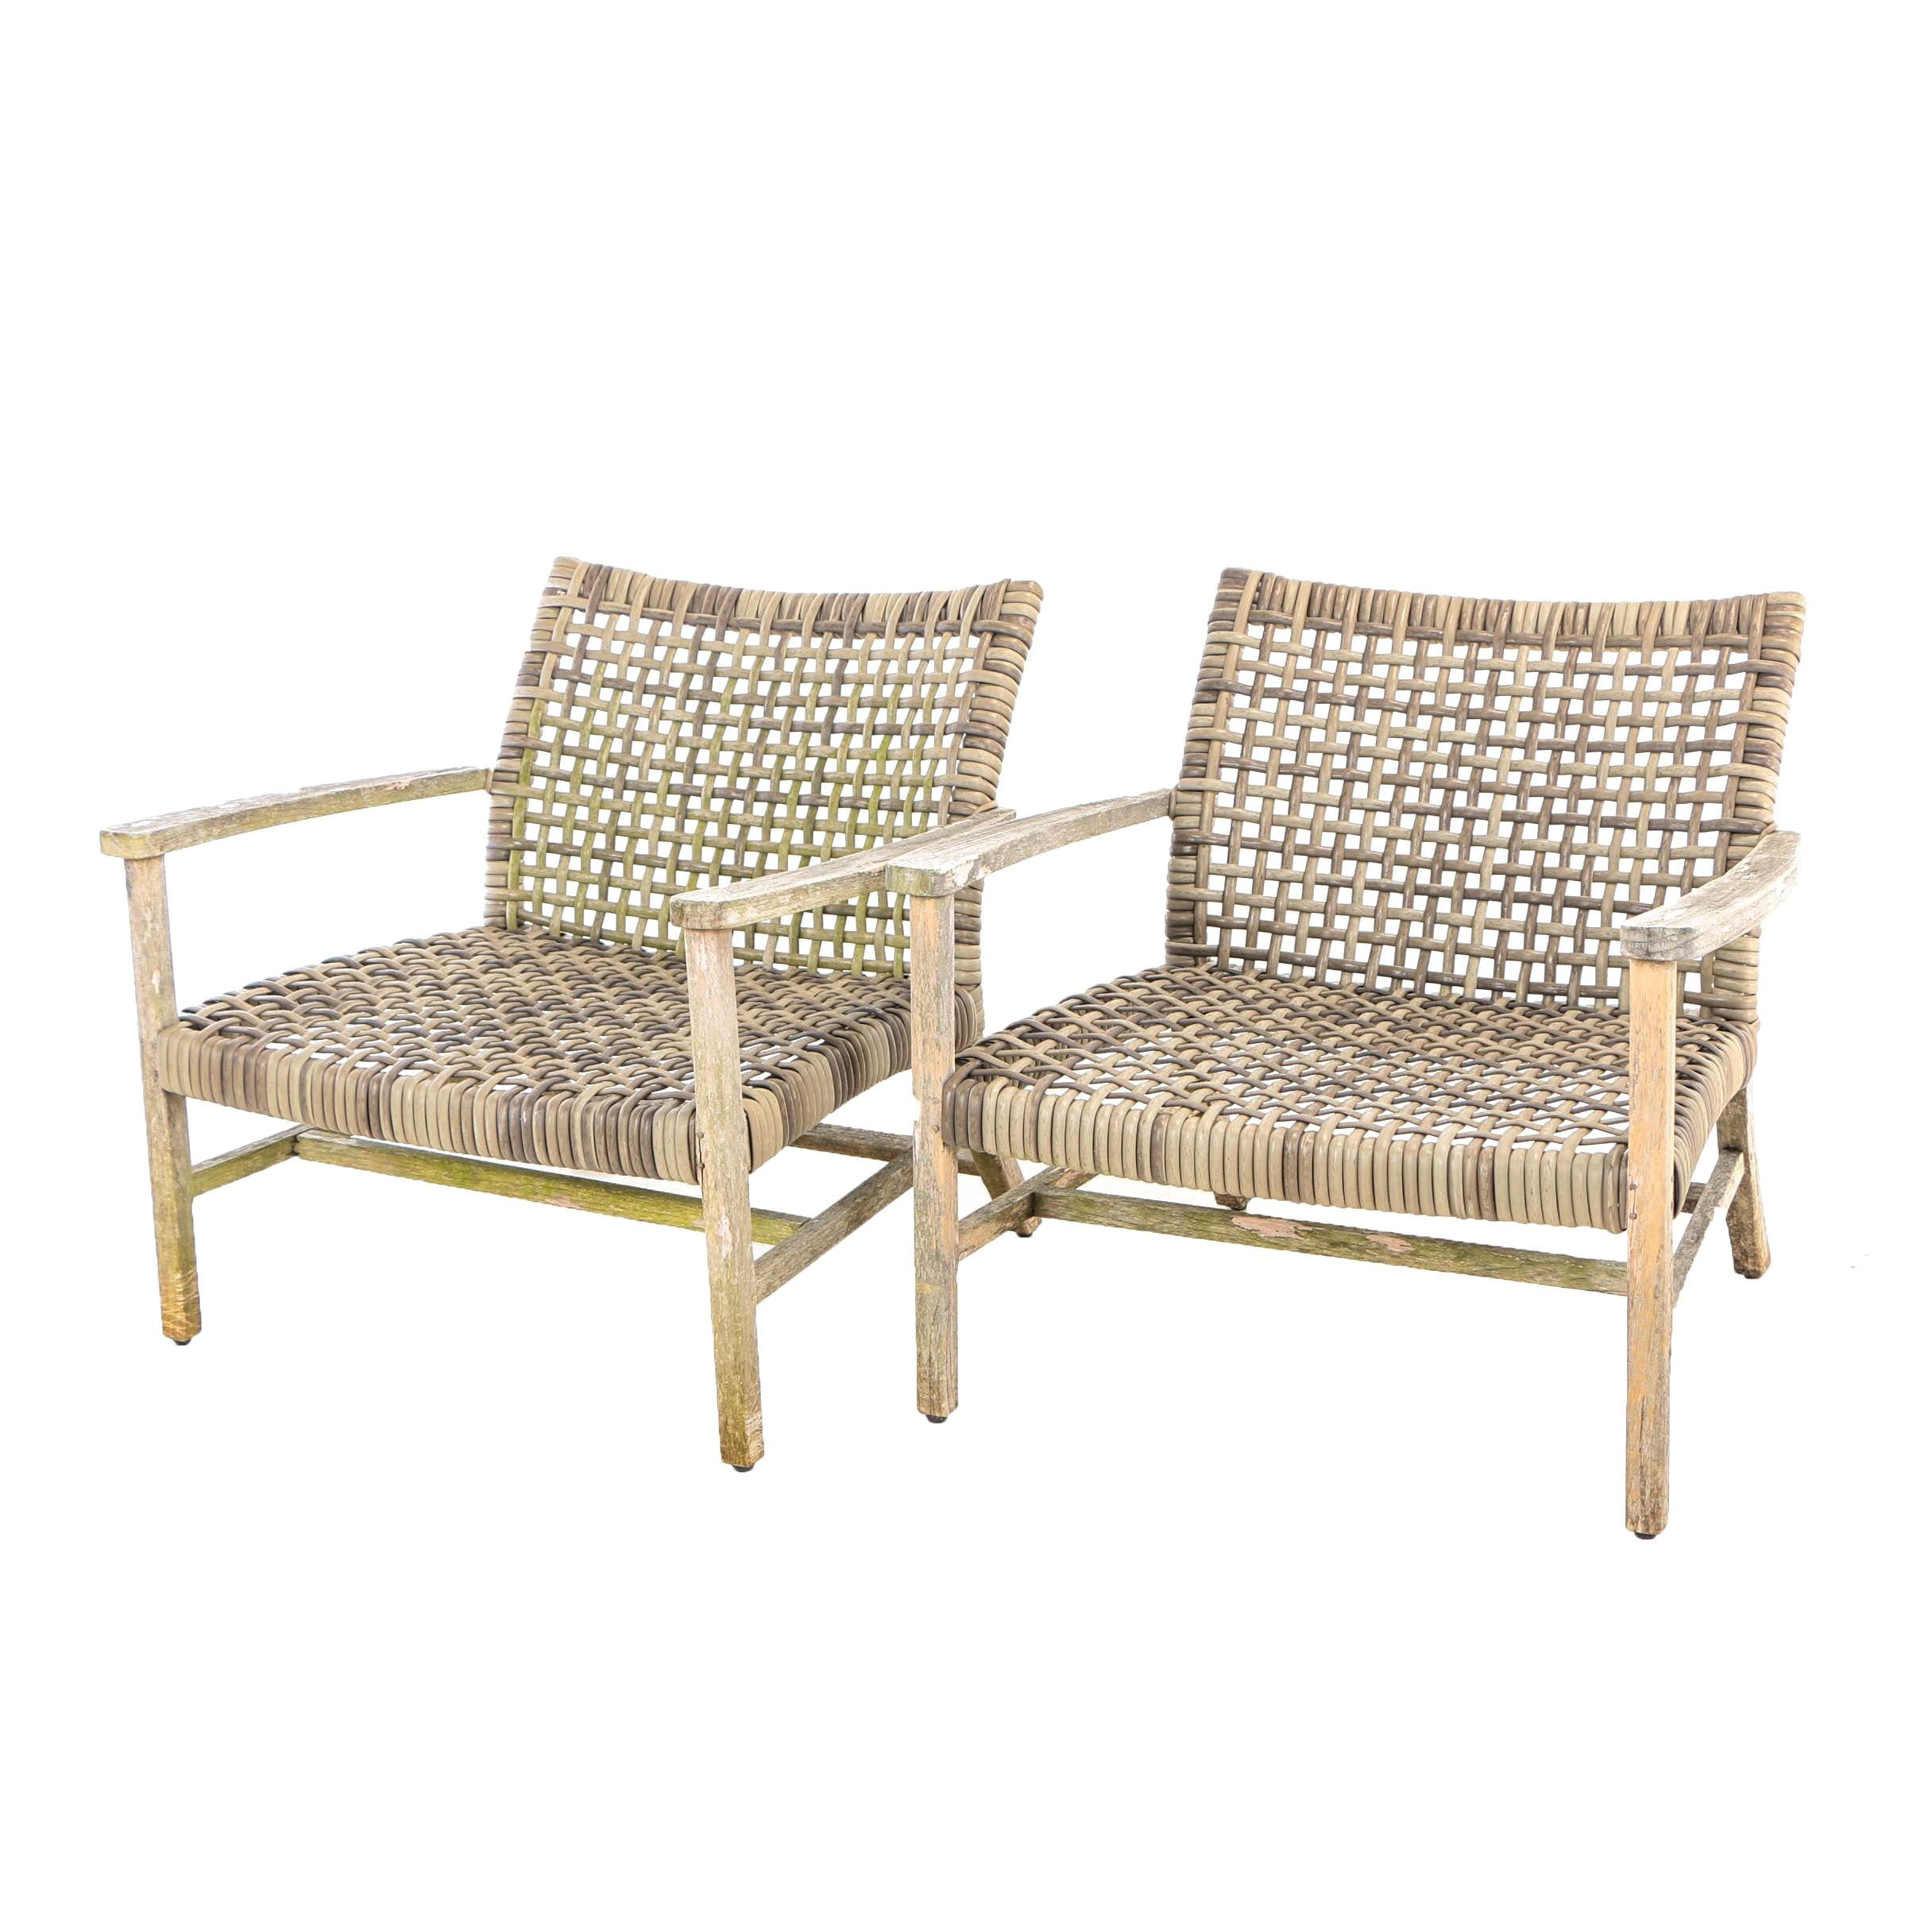 "Pair of Frontgate, Teak and Resin Wicker ""Isola"" Patio Lounge Chairs"